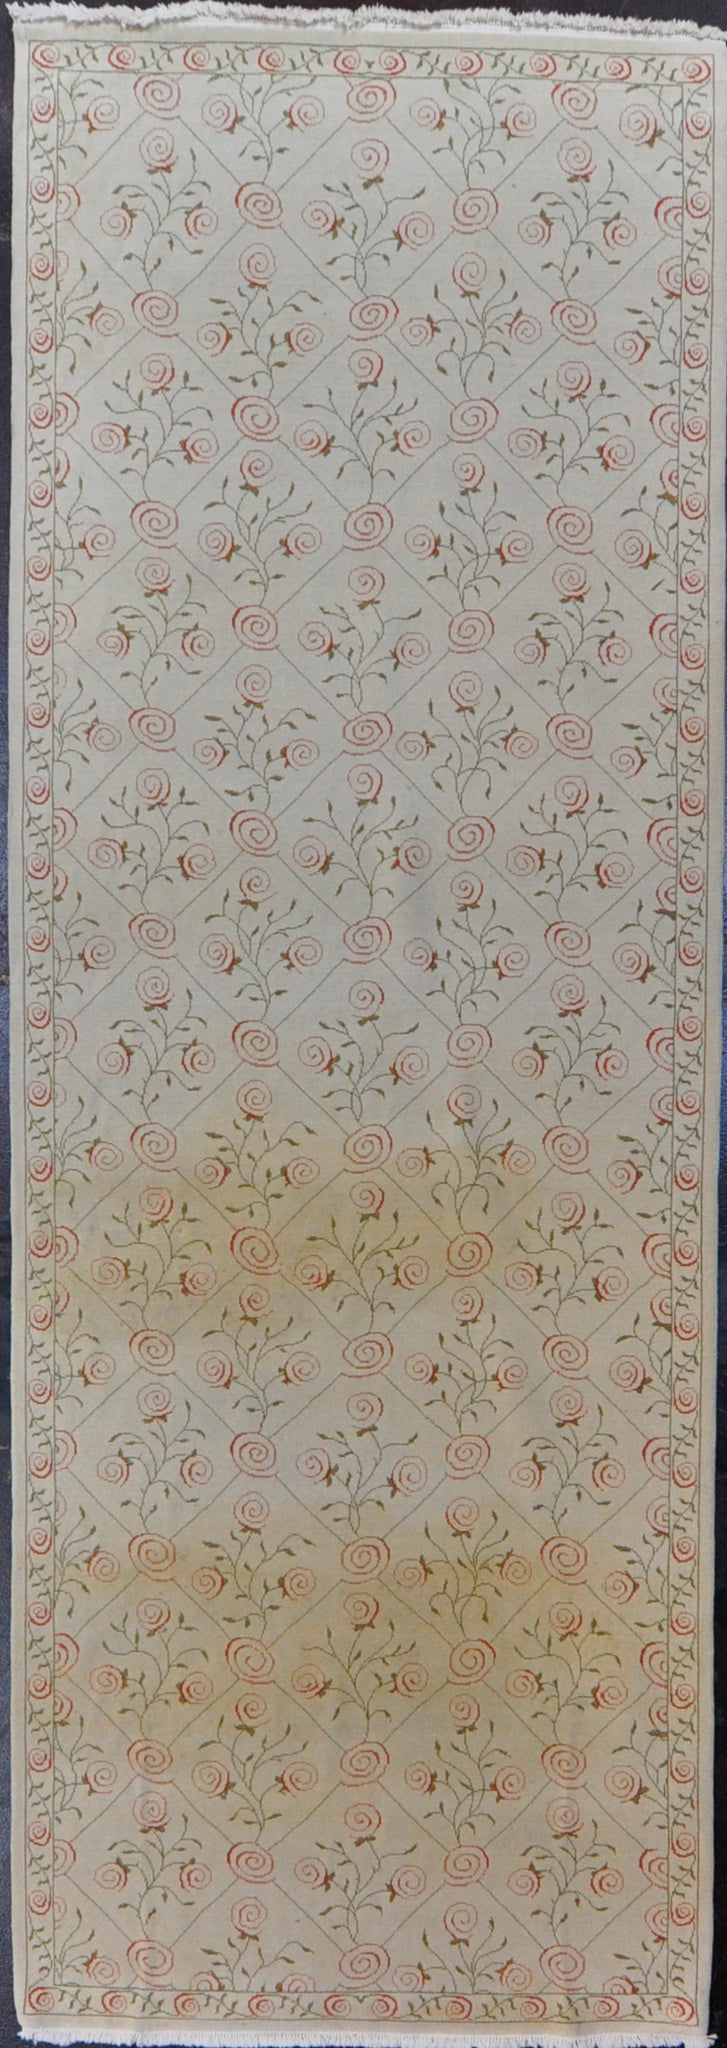 Rug Id: 38269 English garden des 4.7x12.9